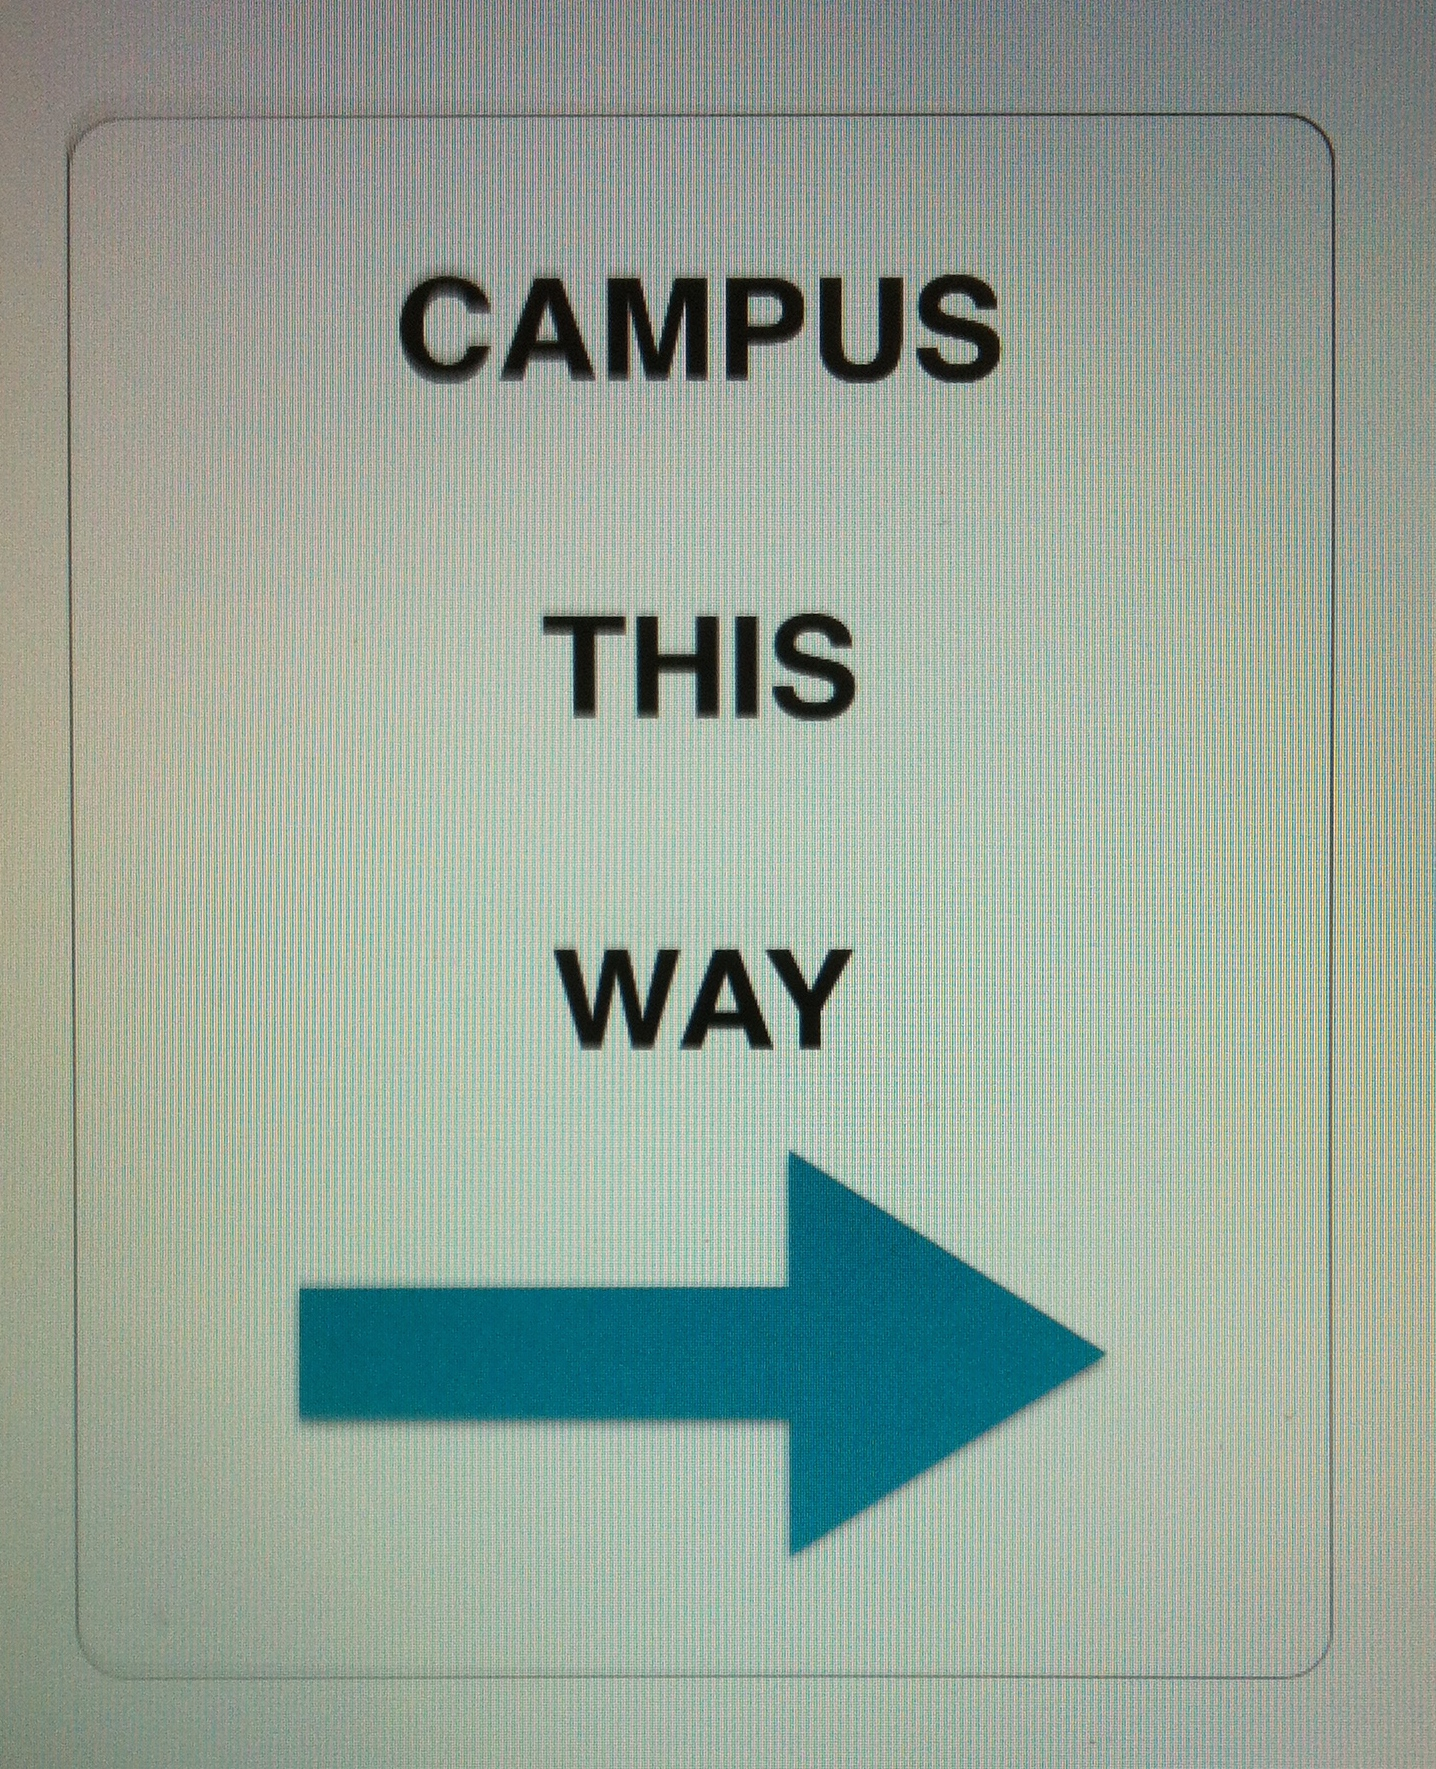 Campus this way. Pjhoto by Wendy David-Gaines